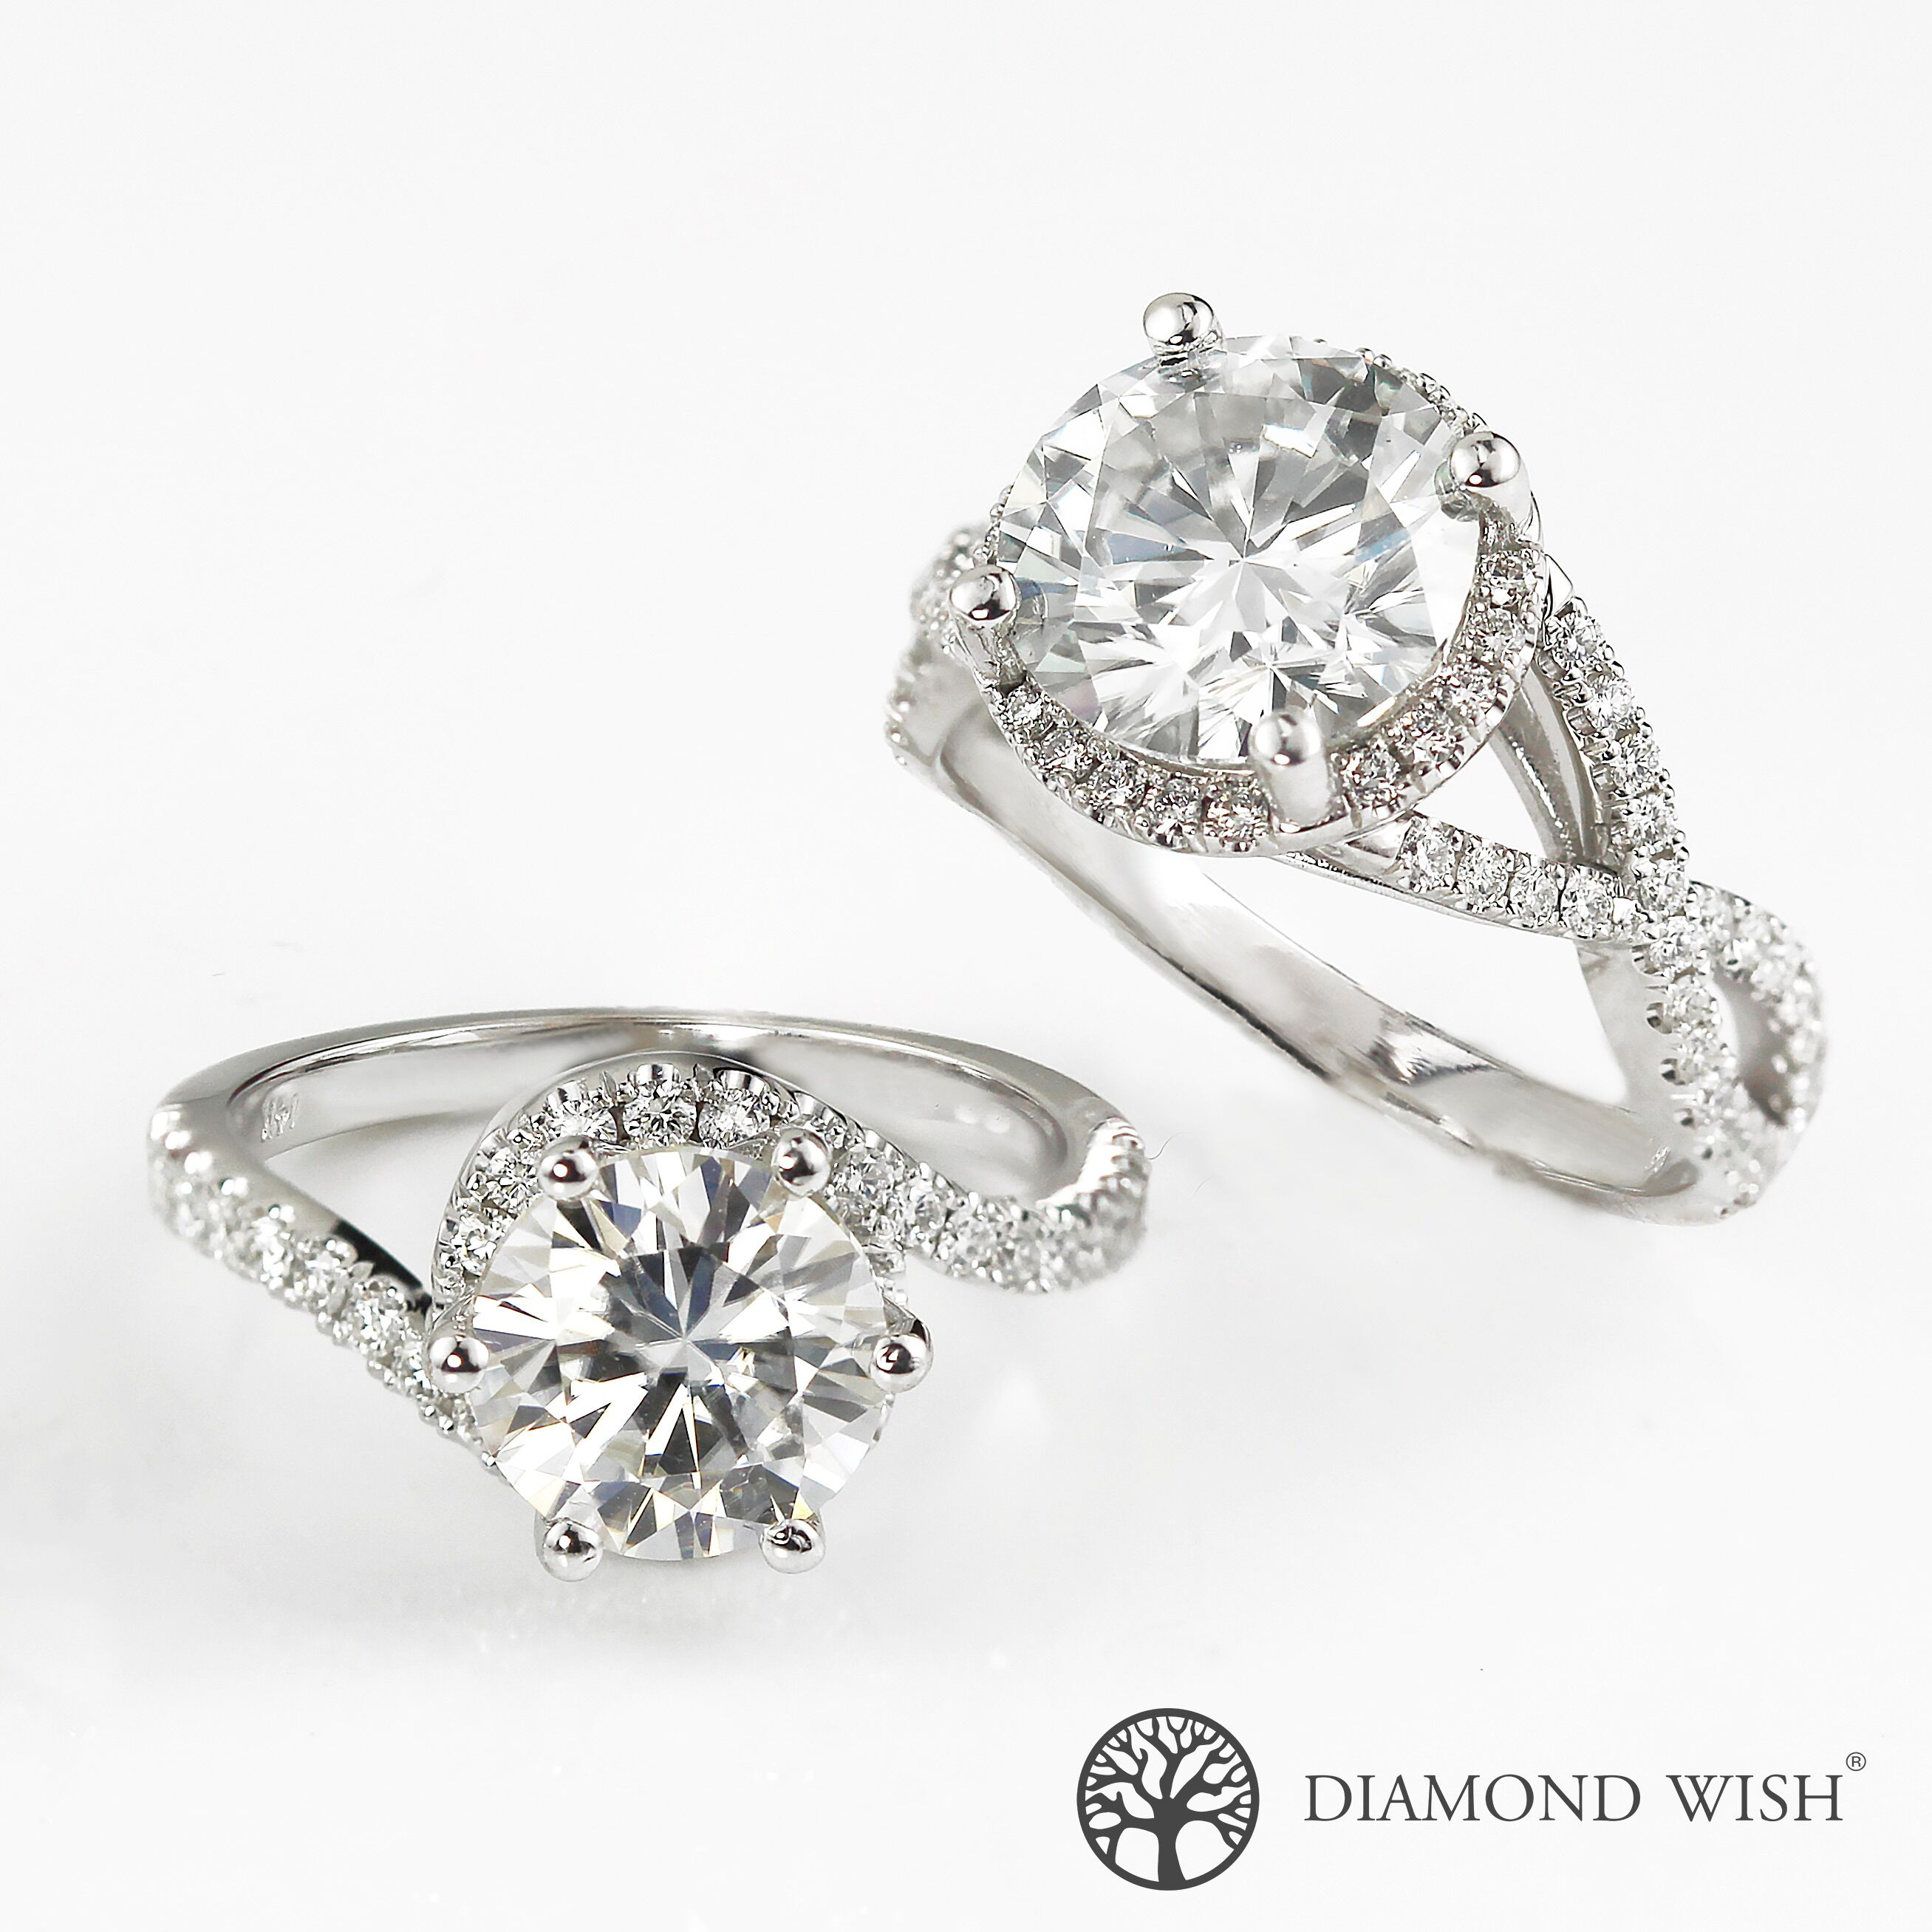 Moissanite Vs. Diamond